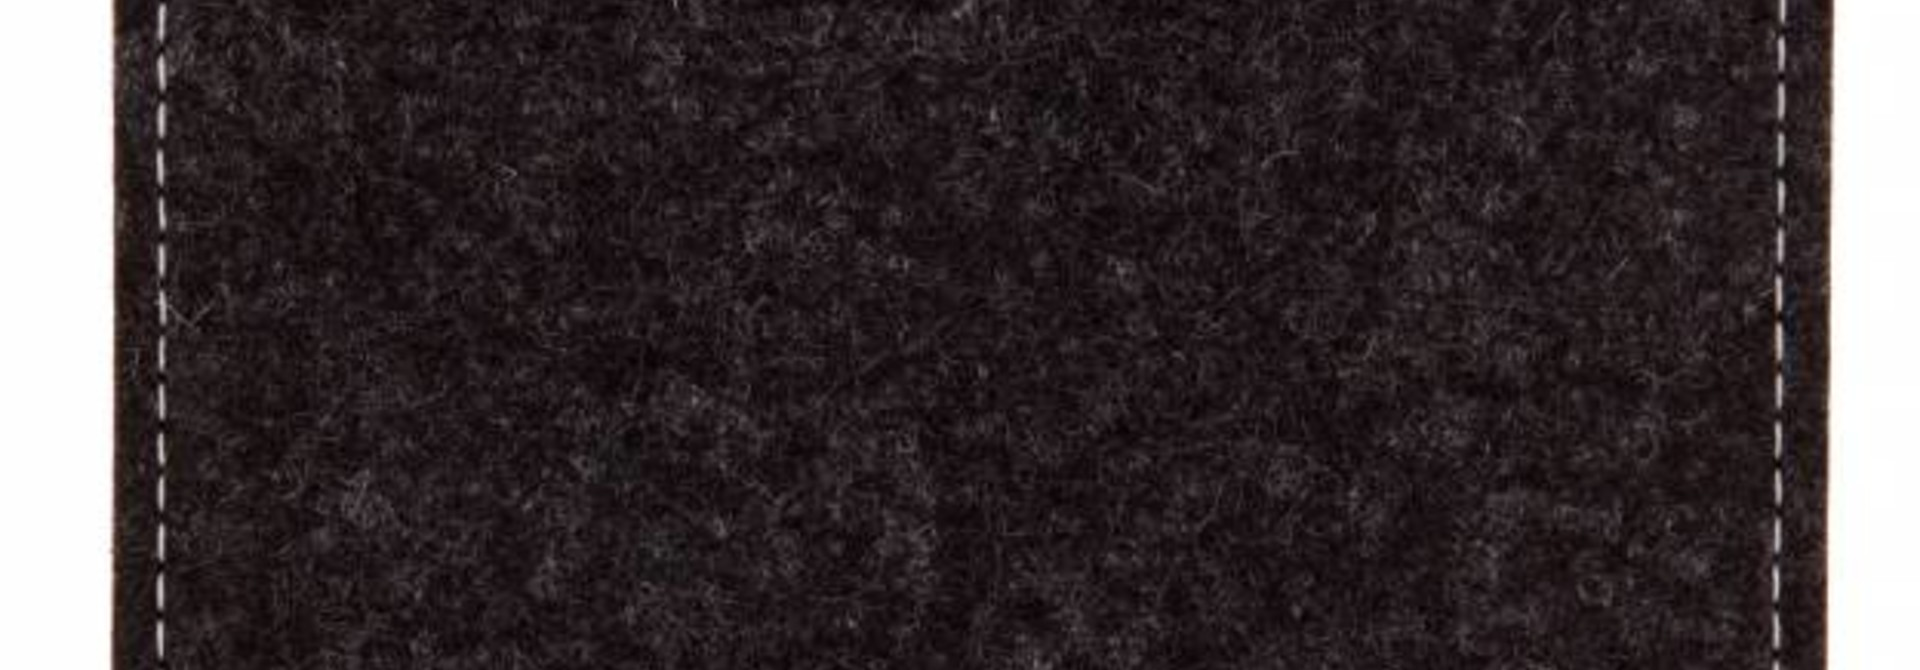 Surface Sleeve Anthracite